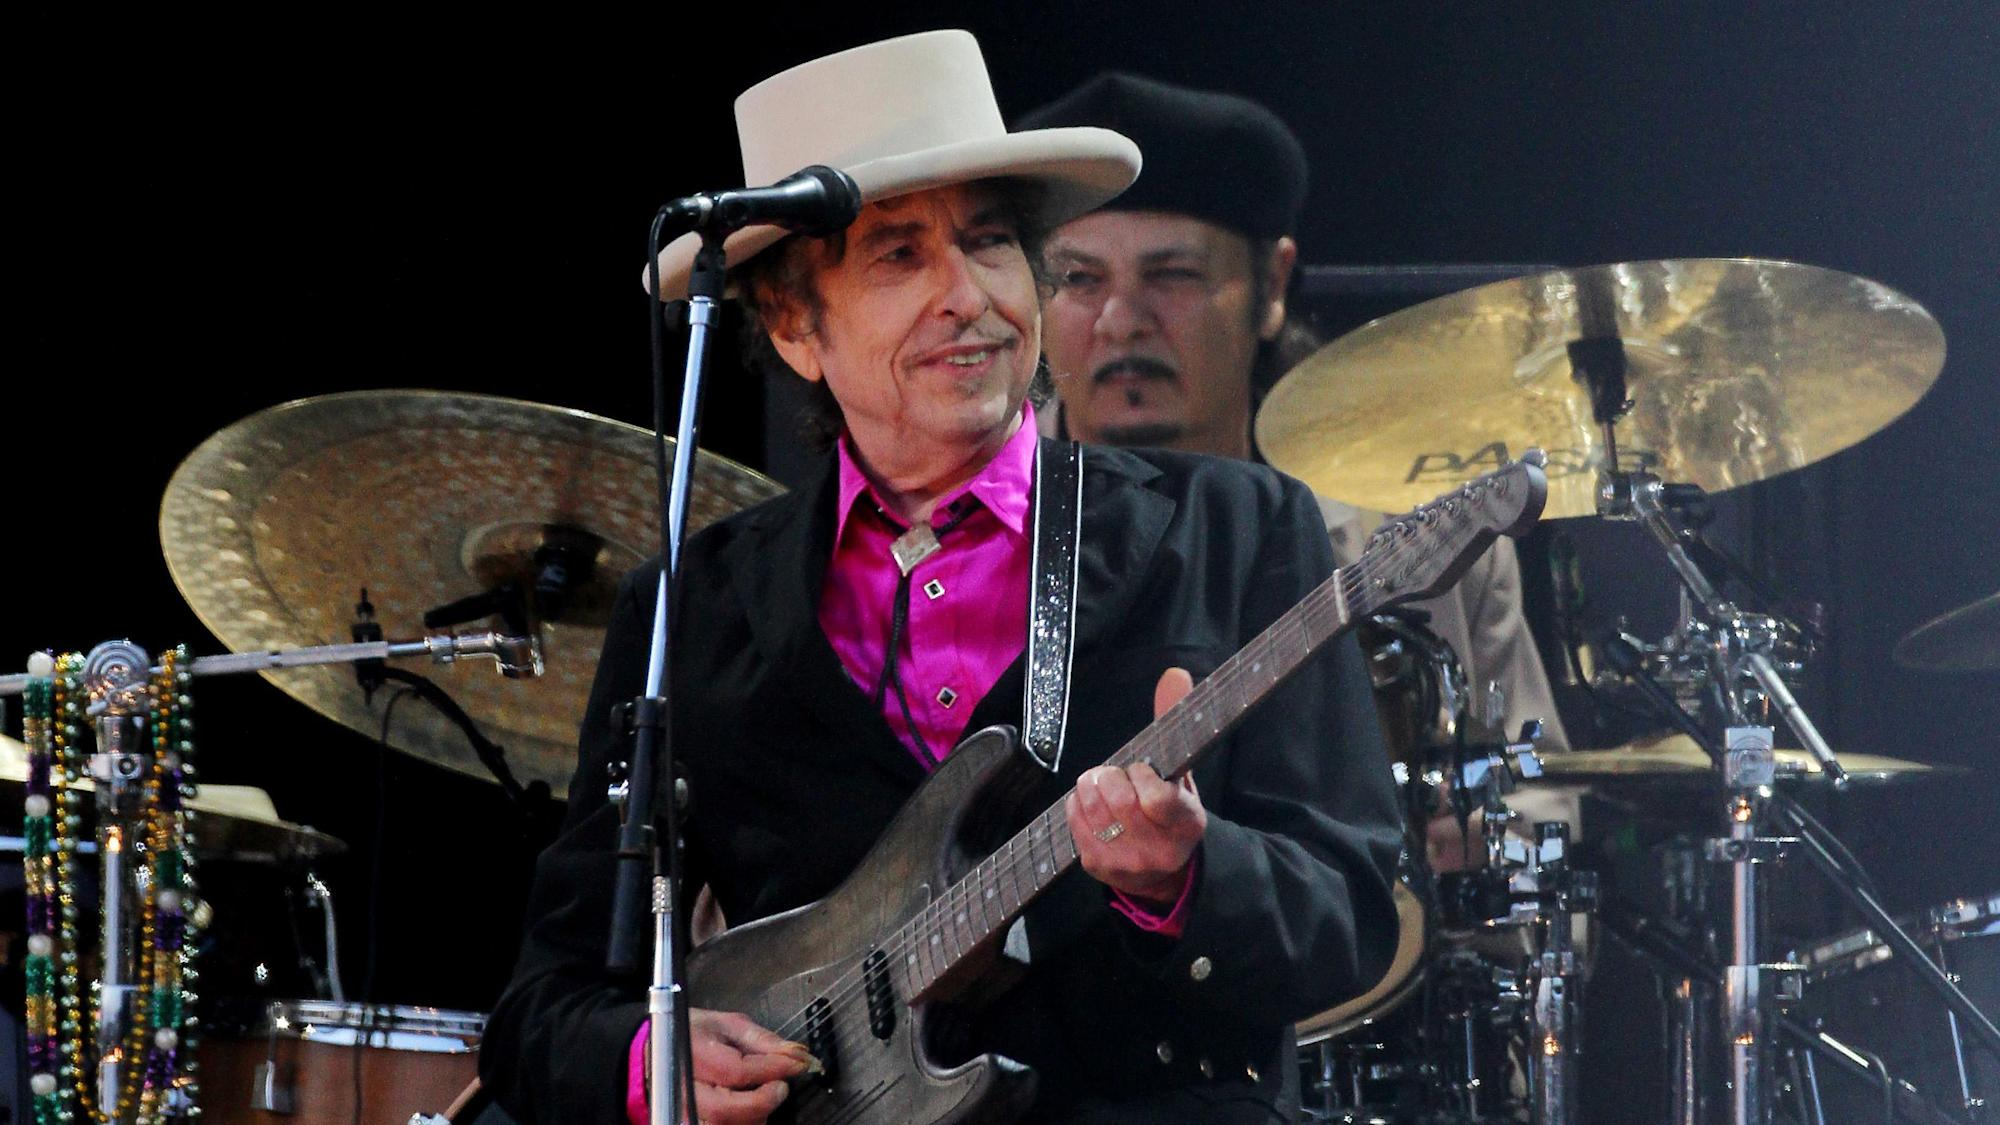 Radio 4 to celebrate Bob Dylan's 80th birthday with series of special programmes